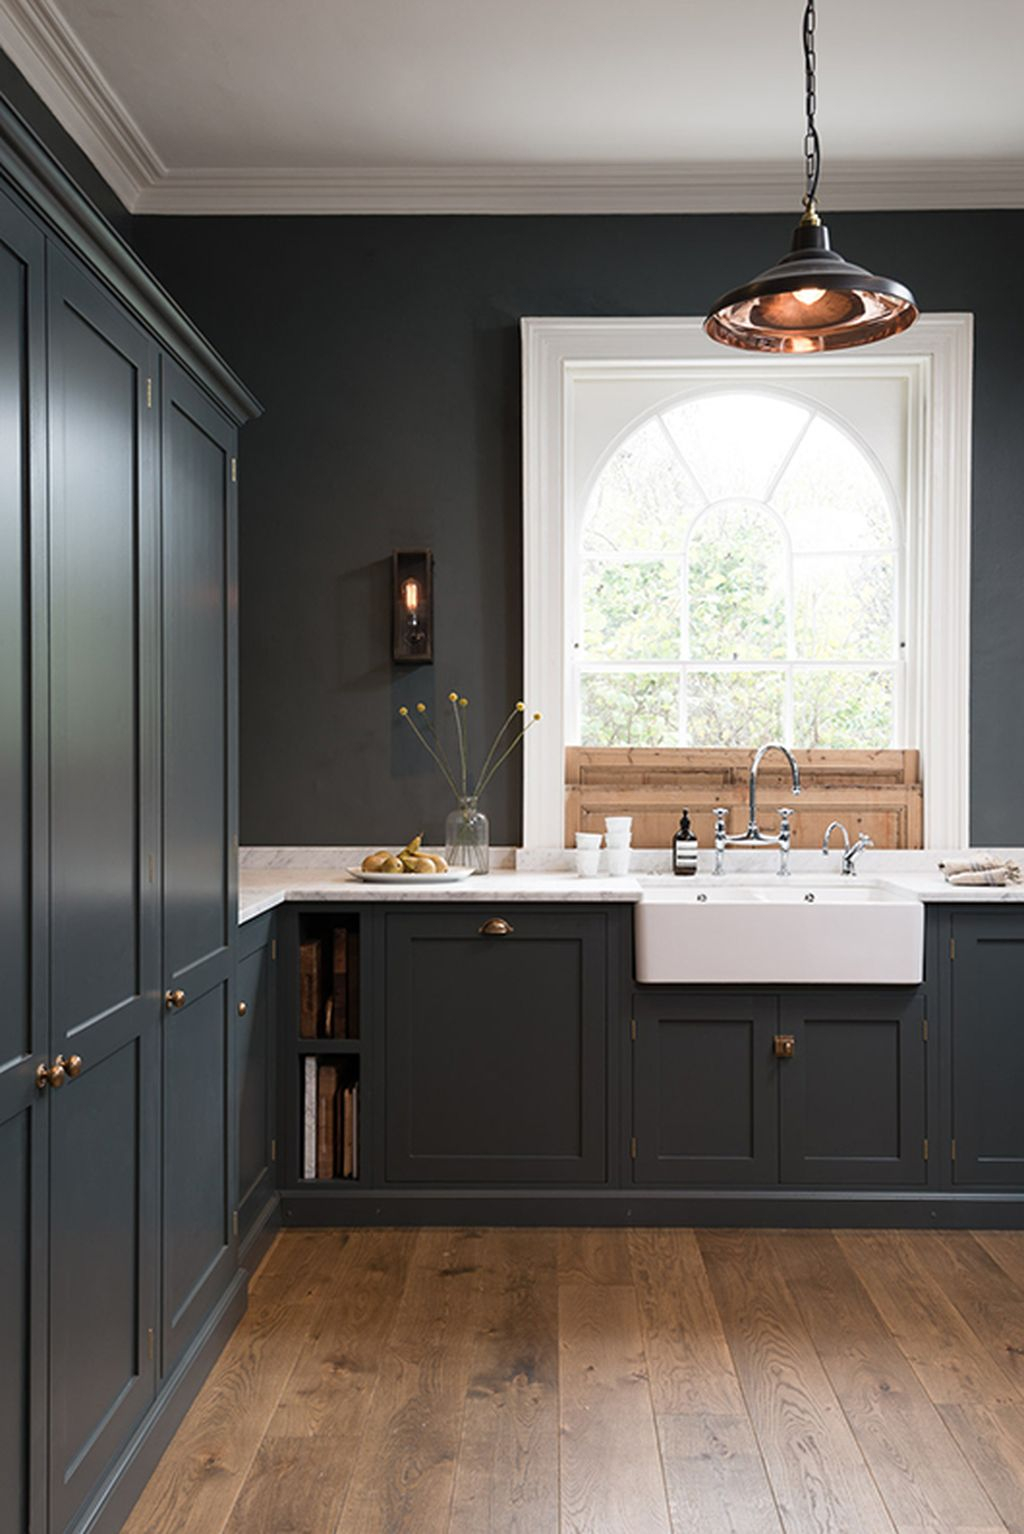 Inspiring Traditional Victorian Kitchen Remodel Ideas 16